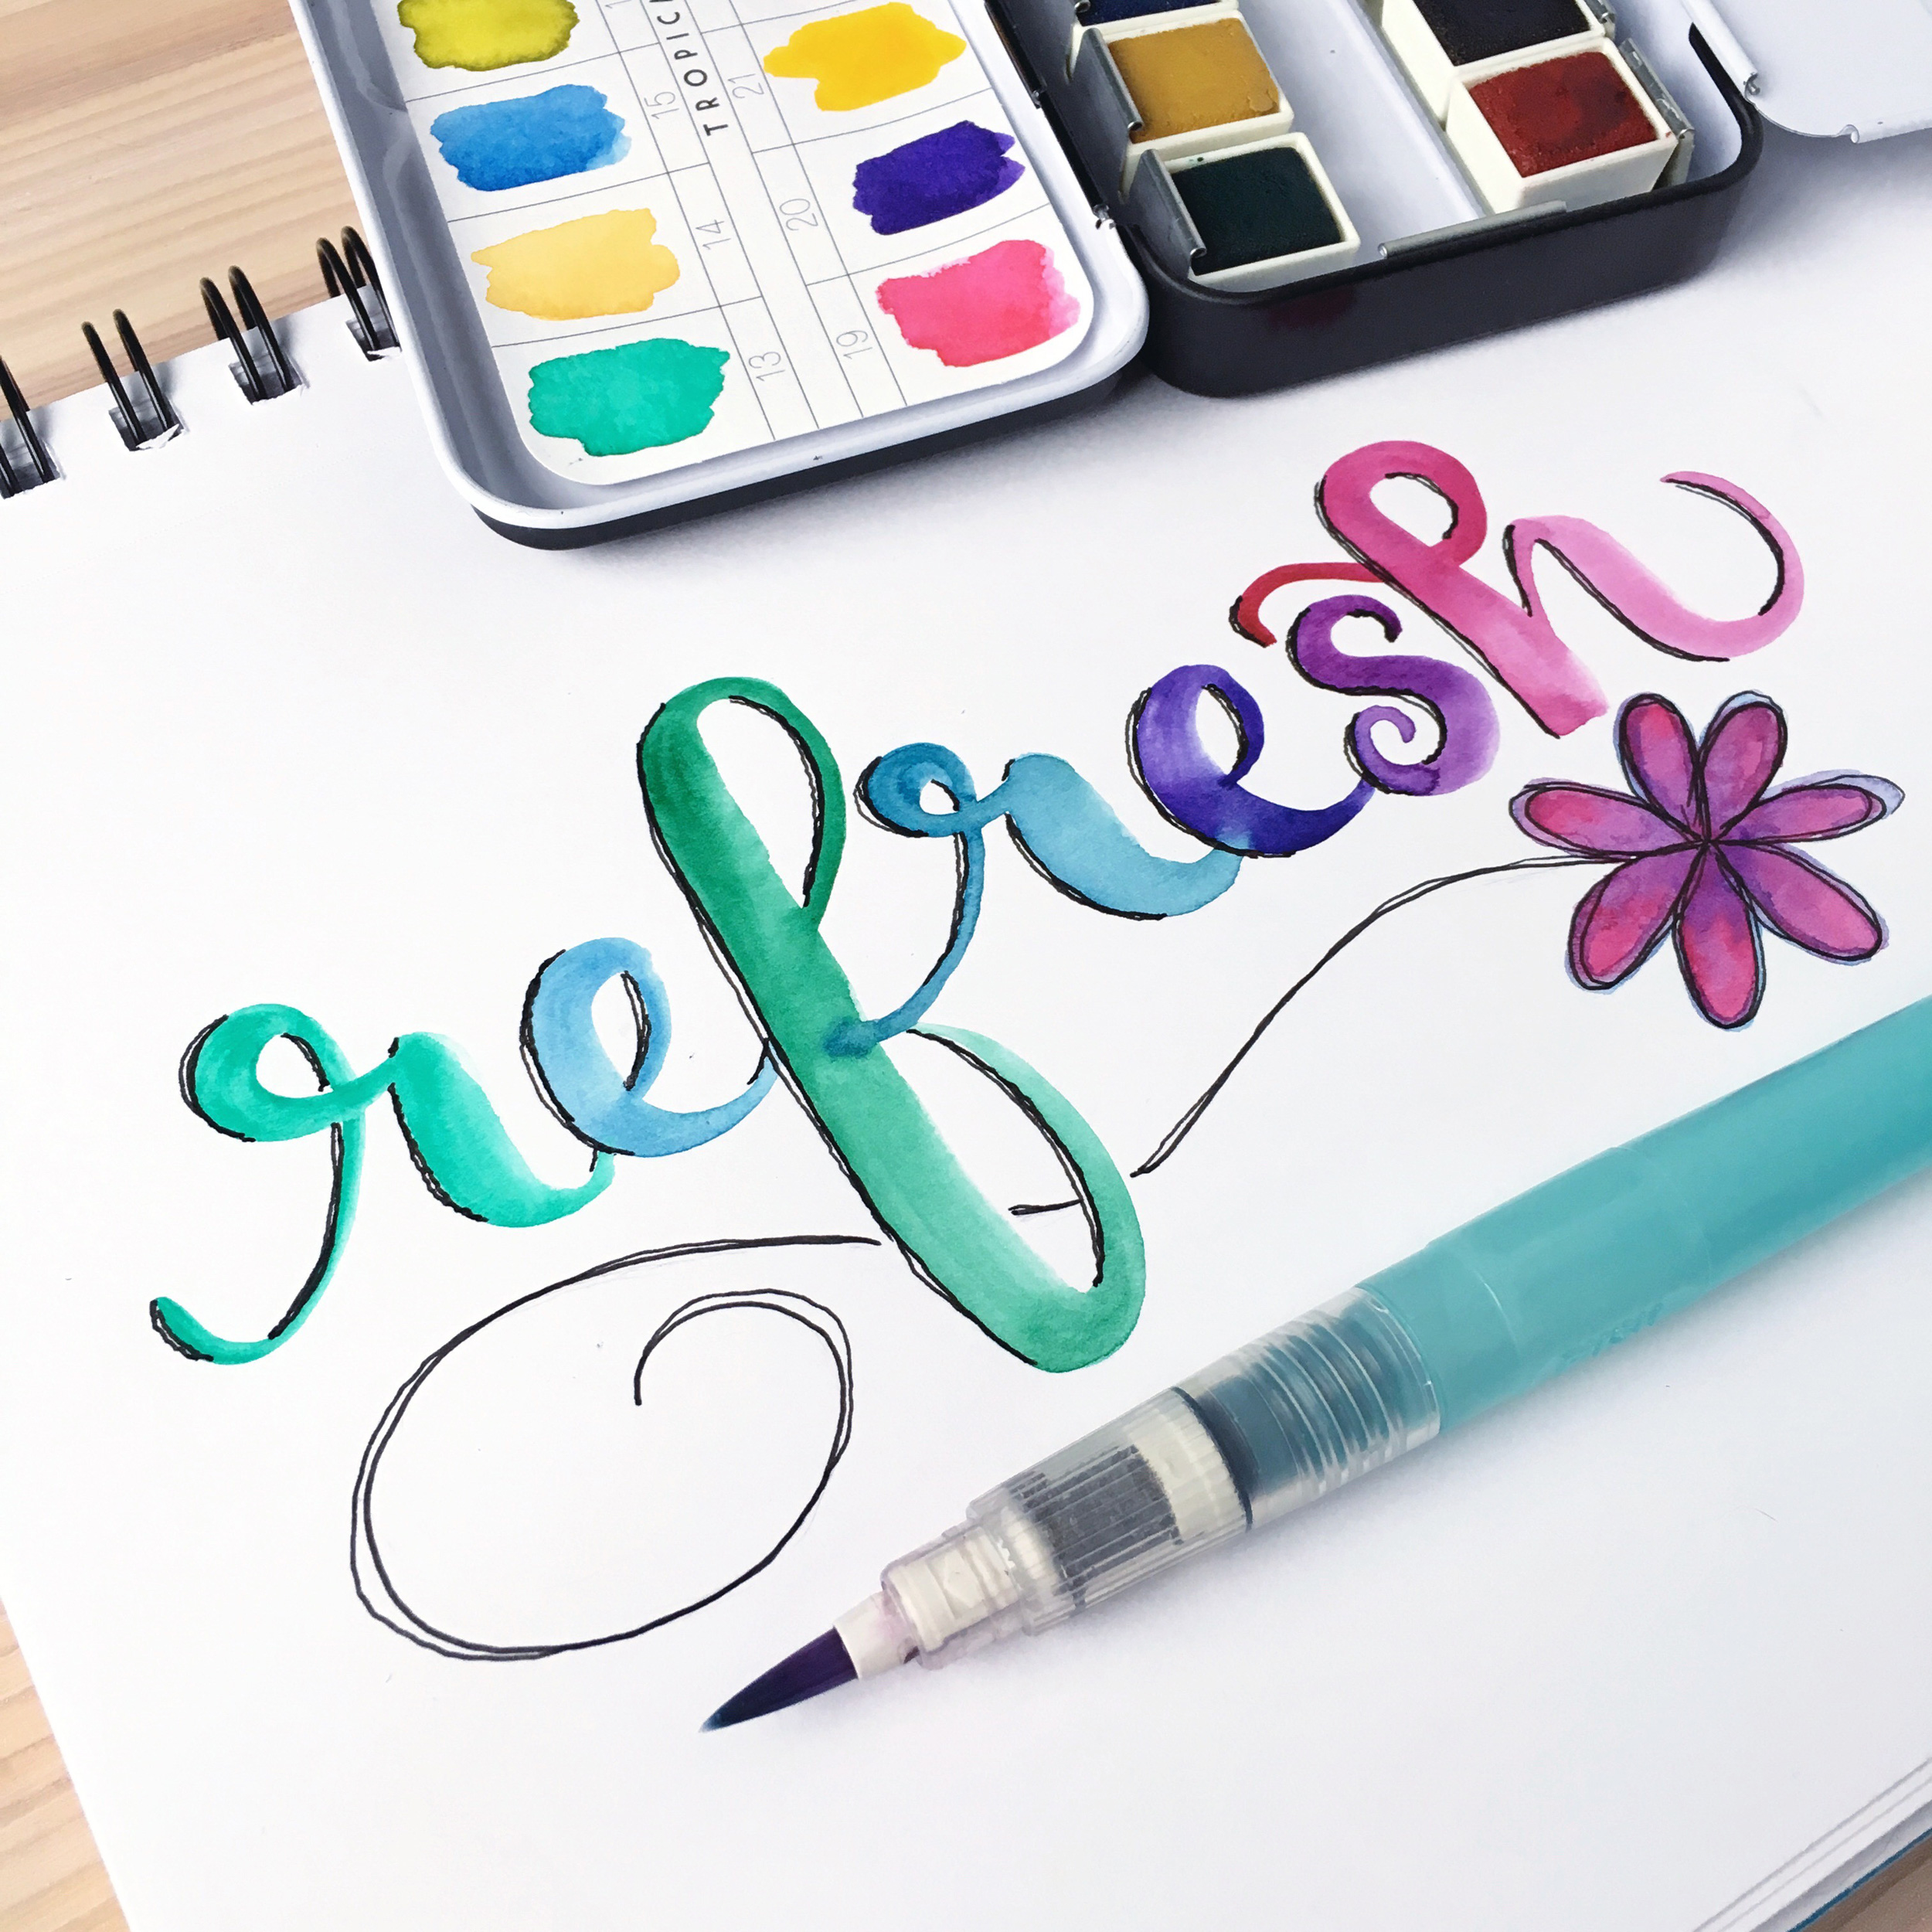 Dani Claire. Artsy Goodness. My New Favorite Watercolor Set. Waterbrush. Prima Watercolor Confections. Watercolor Art. Watercolor Paints. Hand lettering. Hand letterer. Watercolor lettering. Word of the Year. Refresh. Watercolor Daisy.